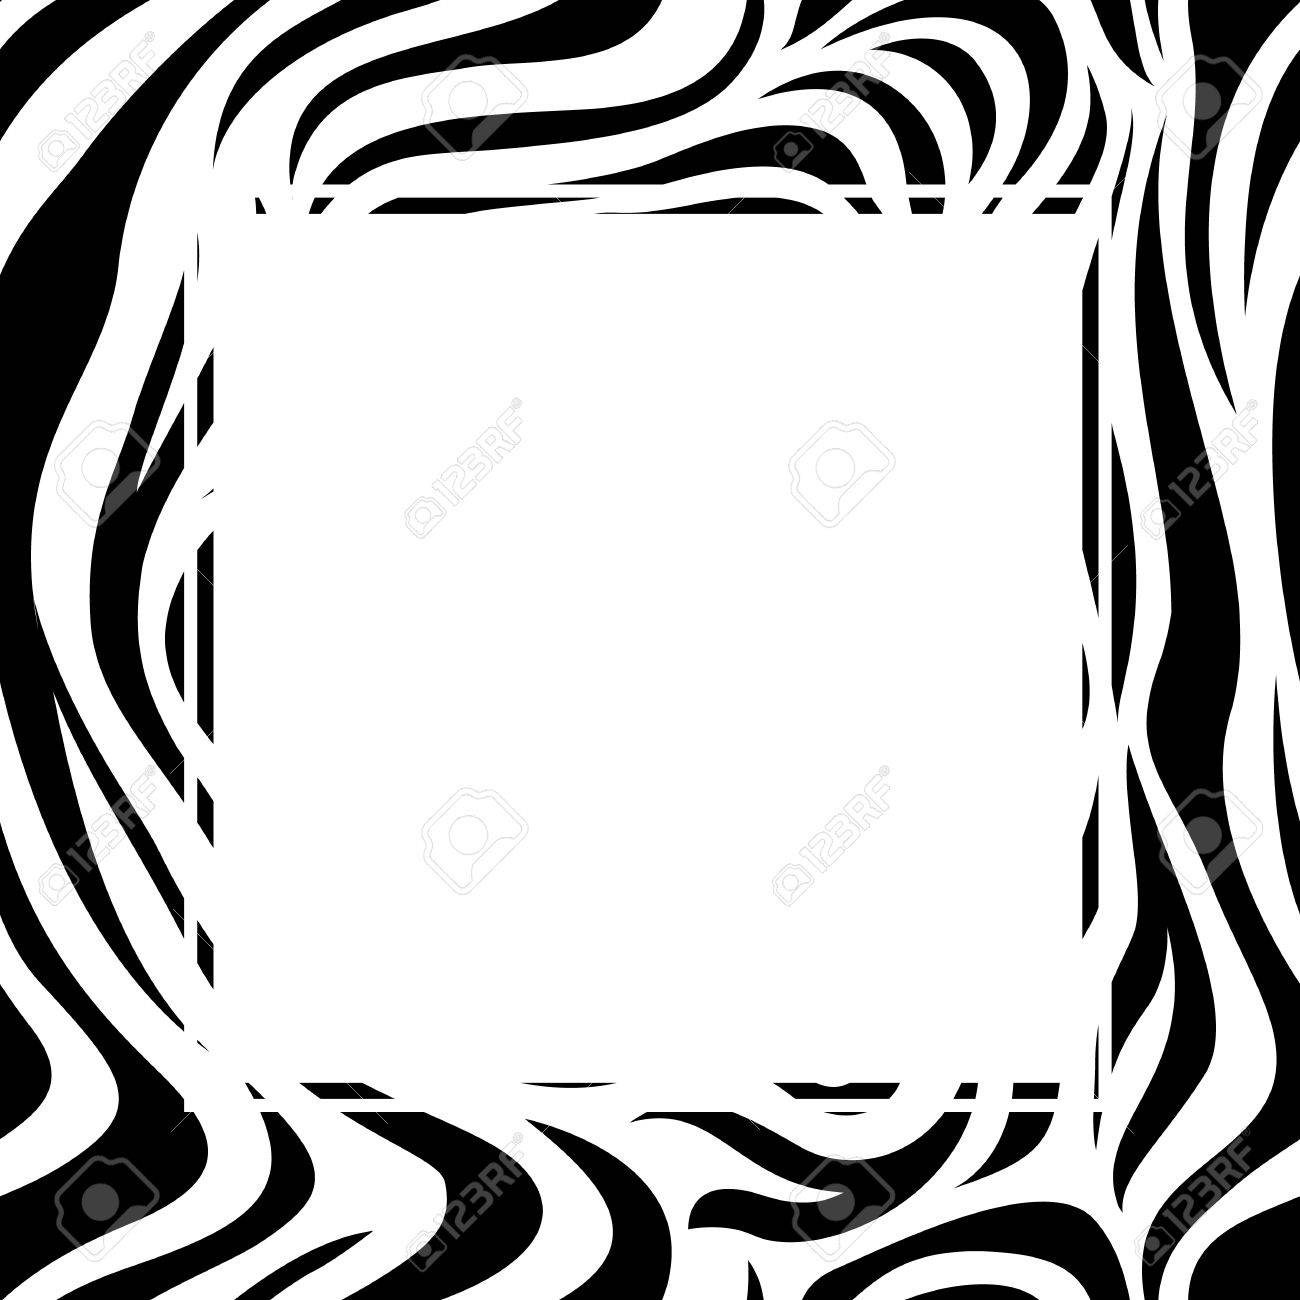 Zebra print border design. Animal skin texture. Black and white...